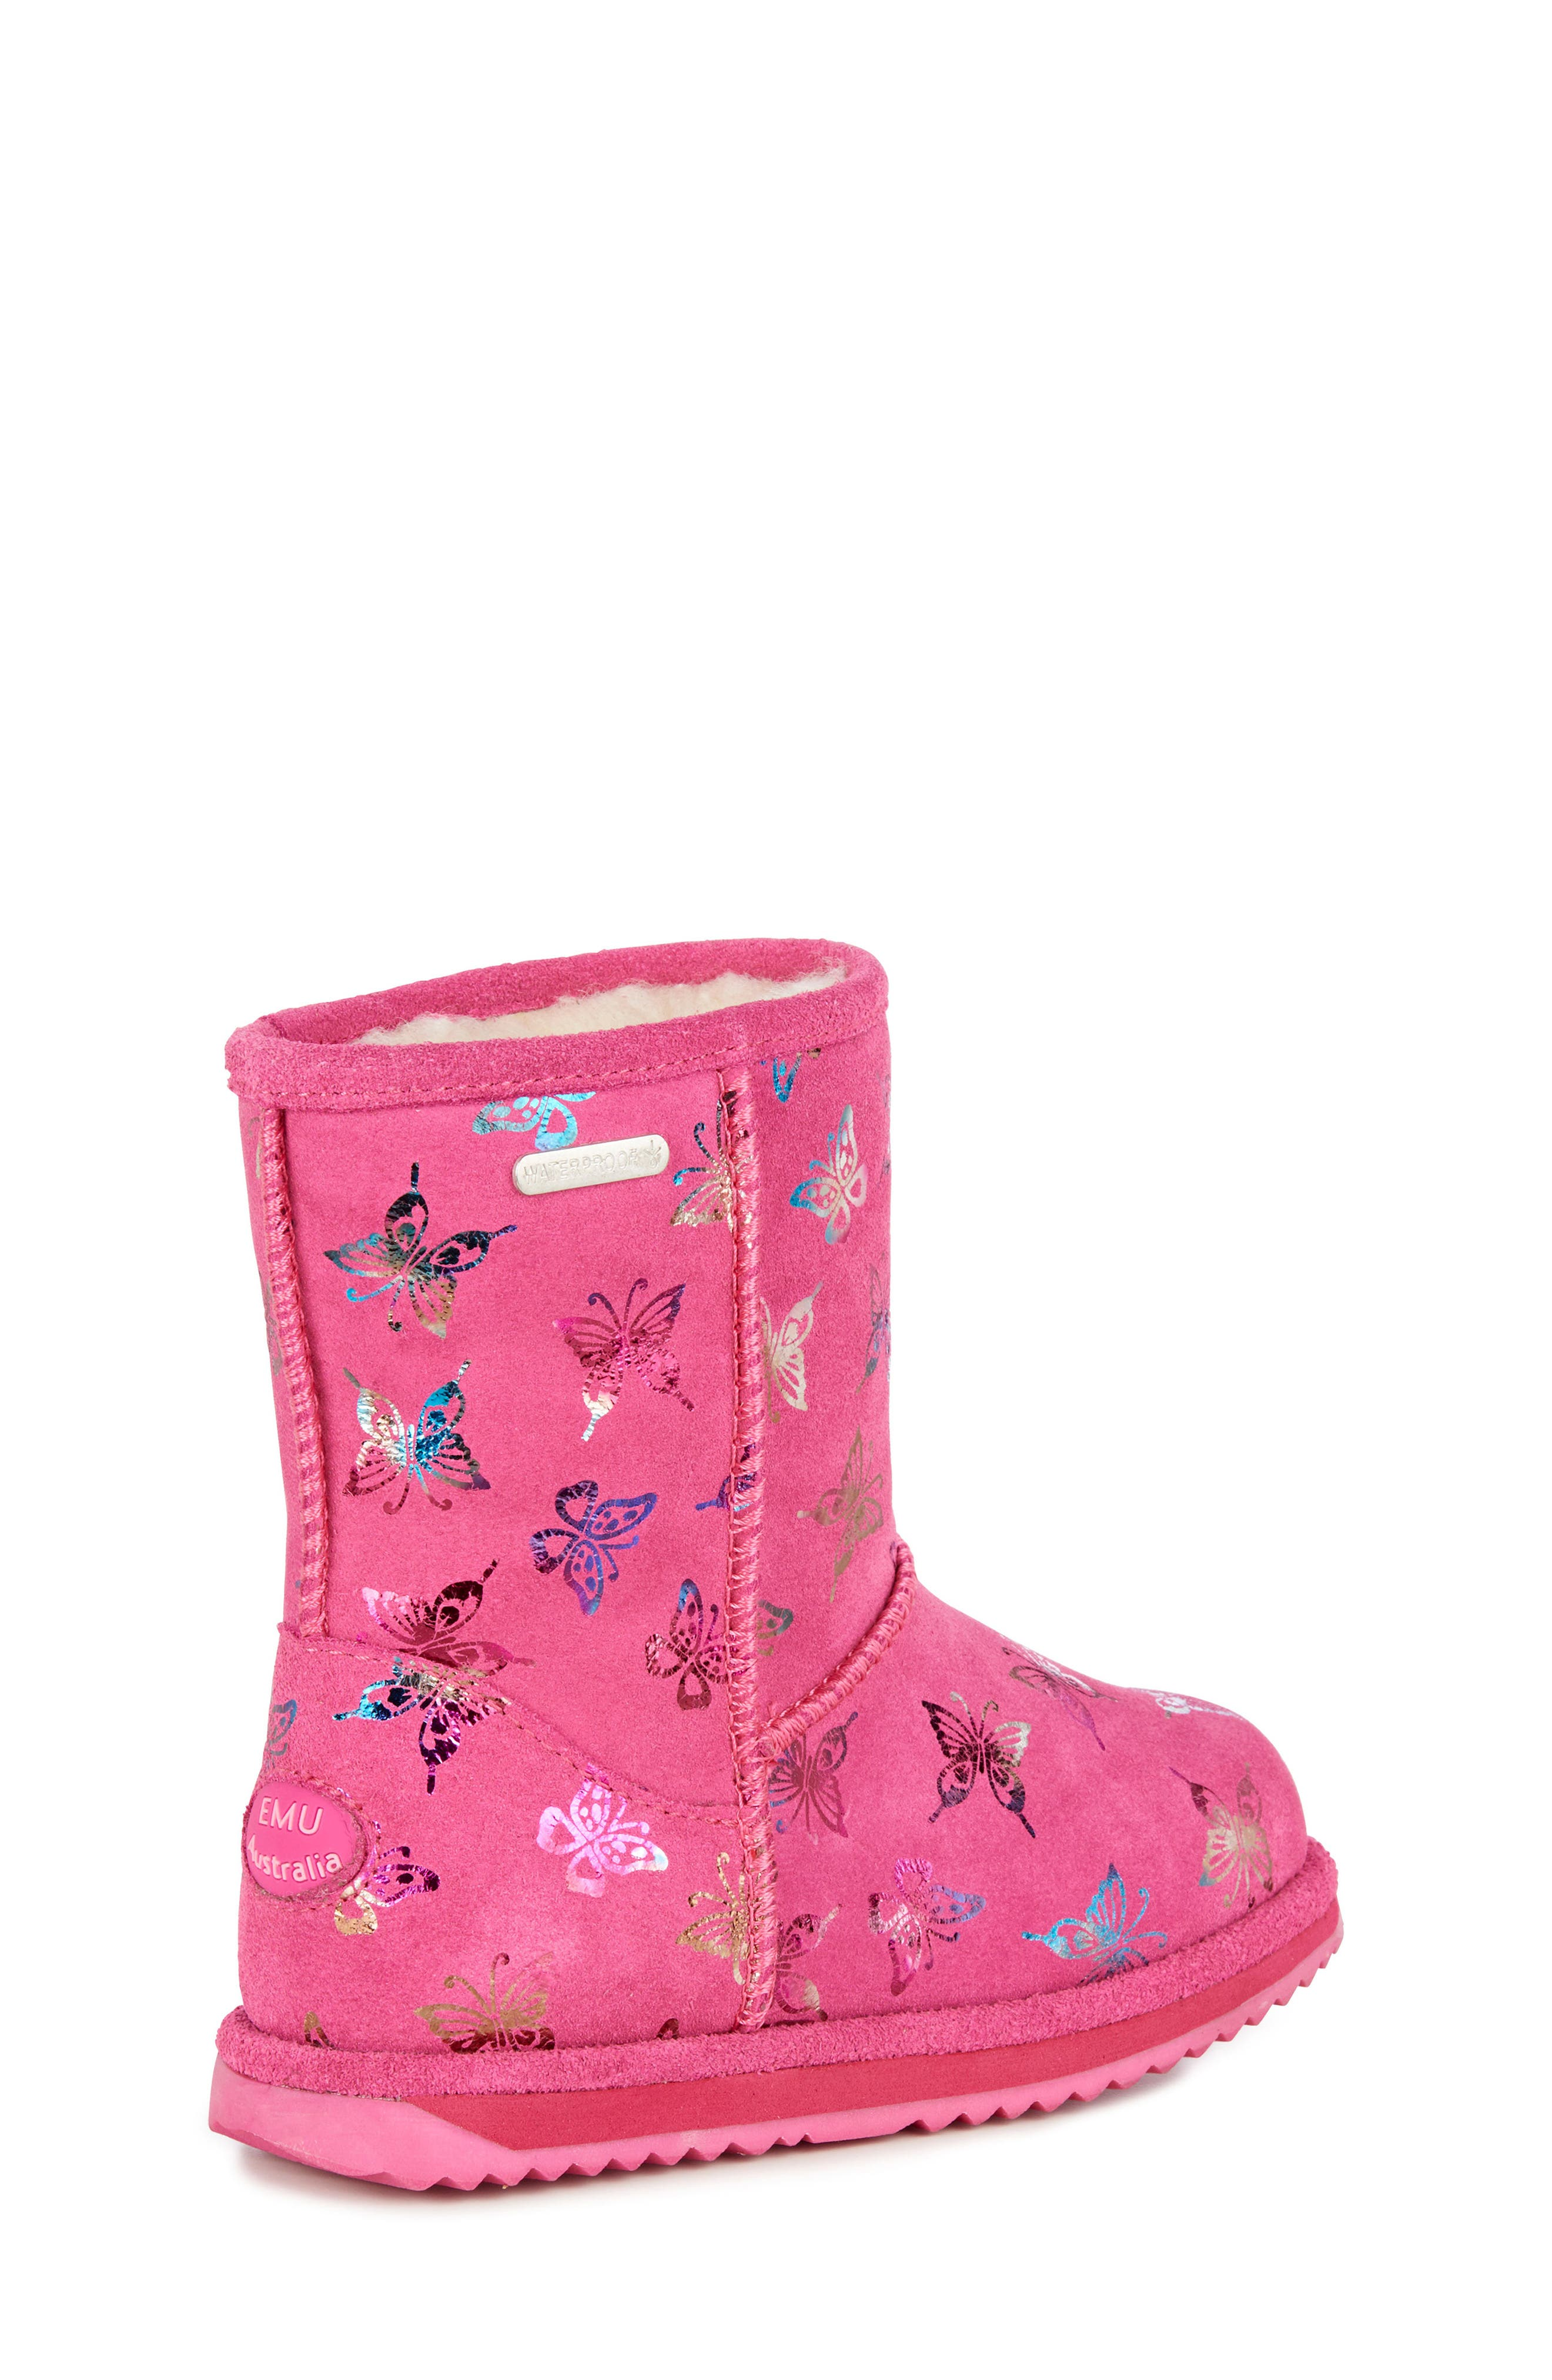 Animal Print Boots,                             Alternate thumbnail 7, color,                             HOT PINK